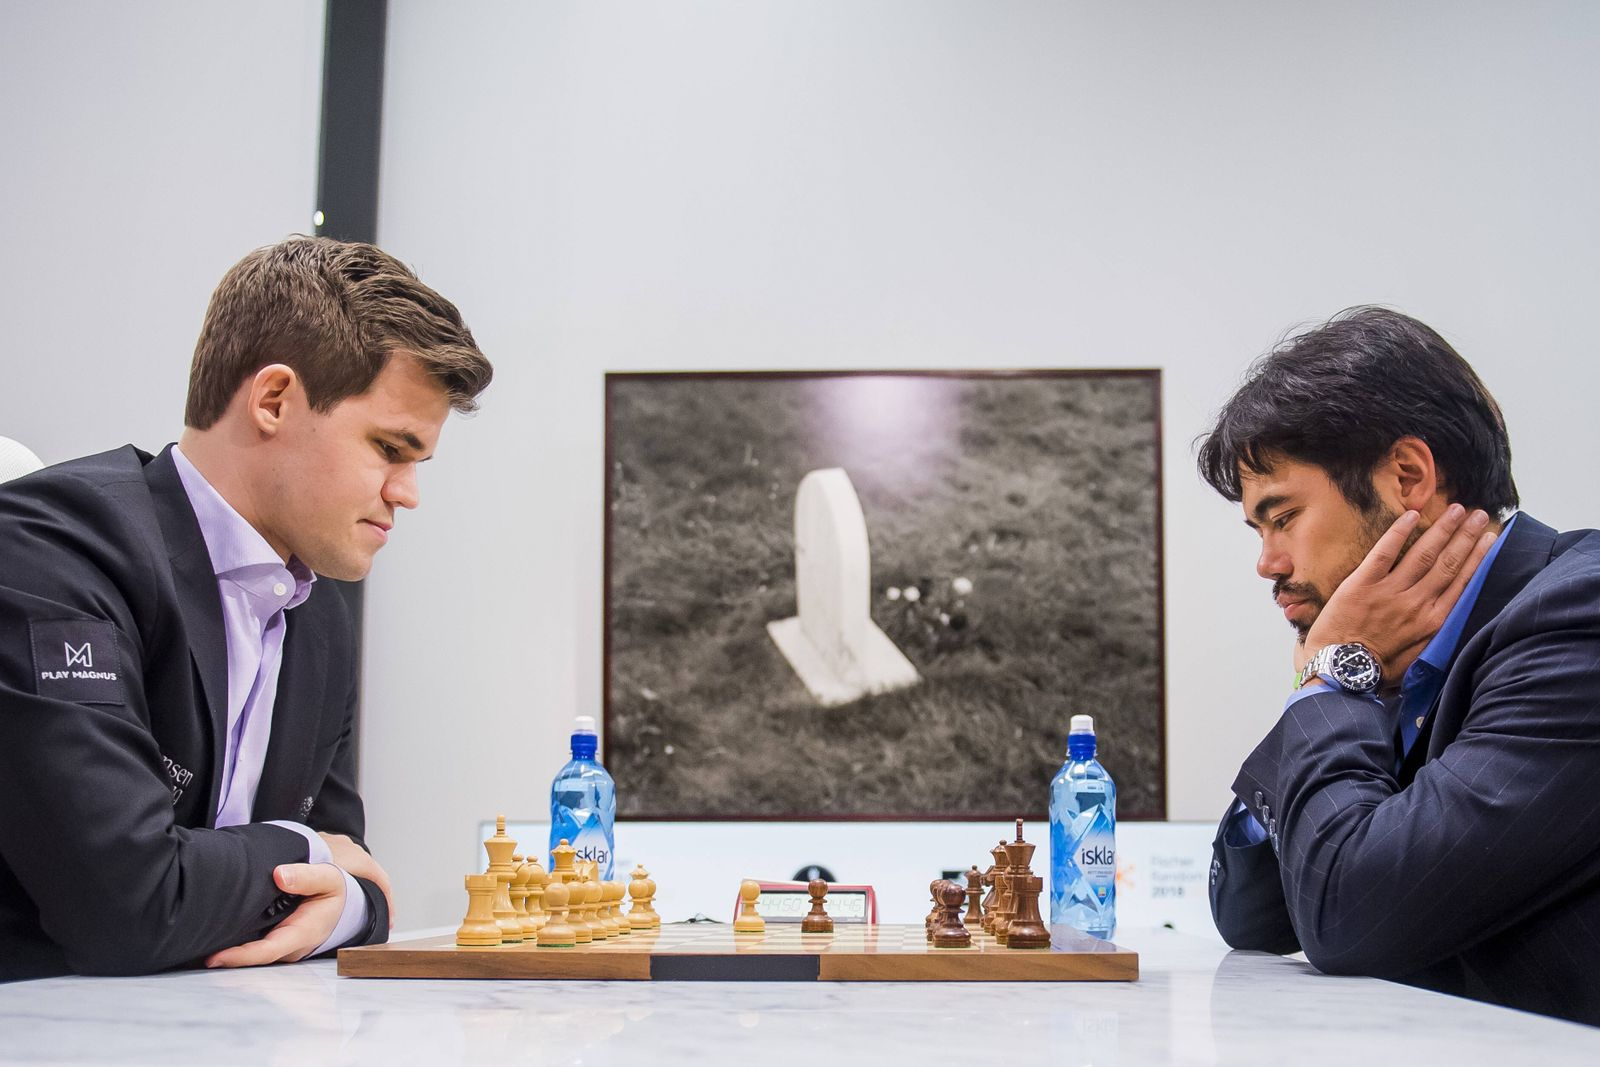 180209 Magnus Carlsen of Norway and Hikaru Nakamura of USA during the Fischer Random tournament on